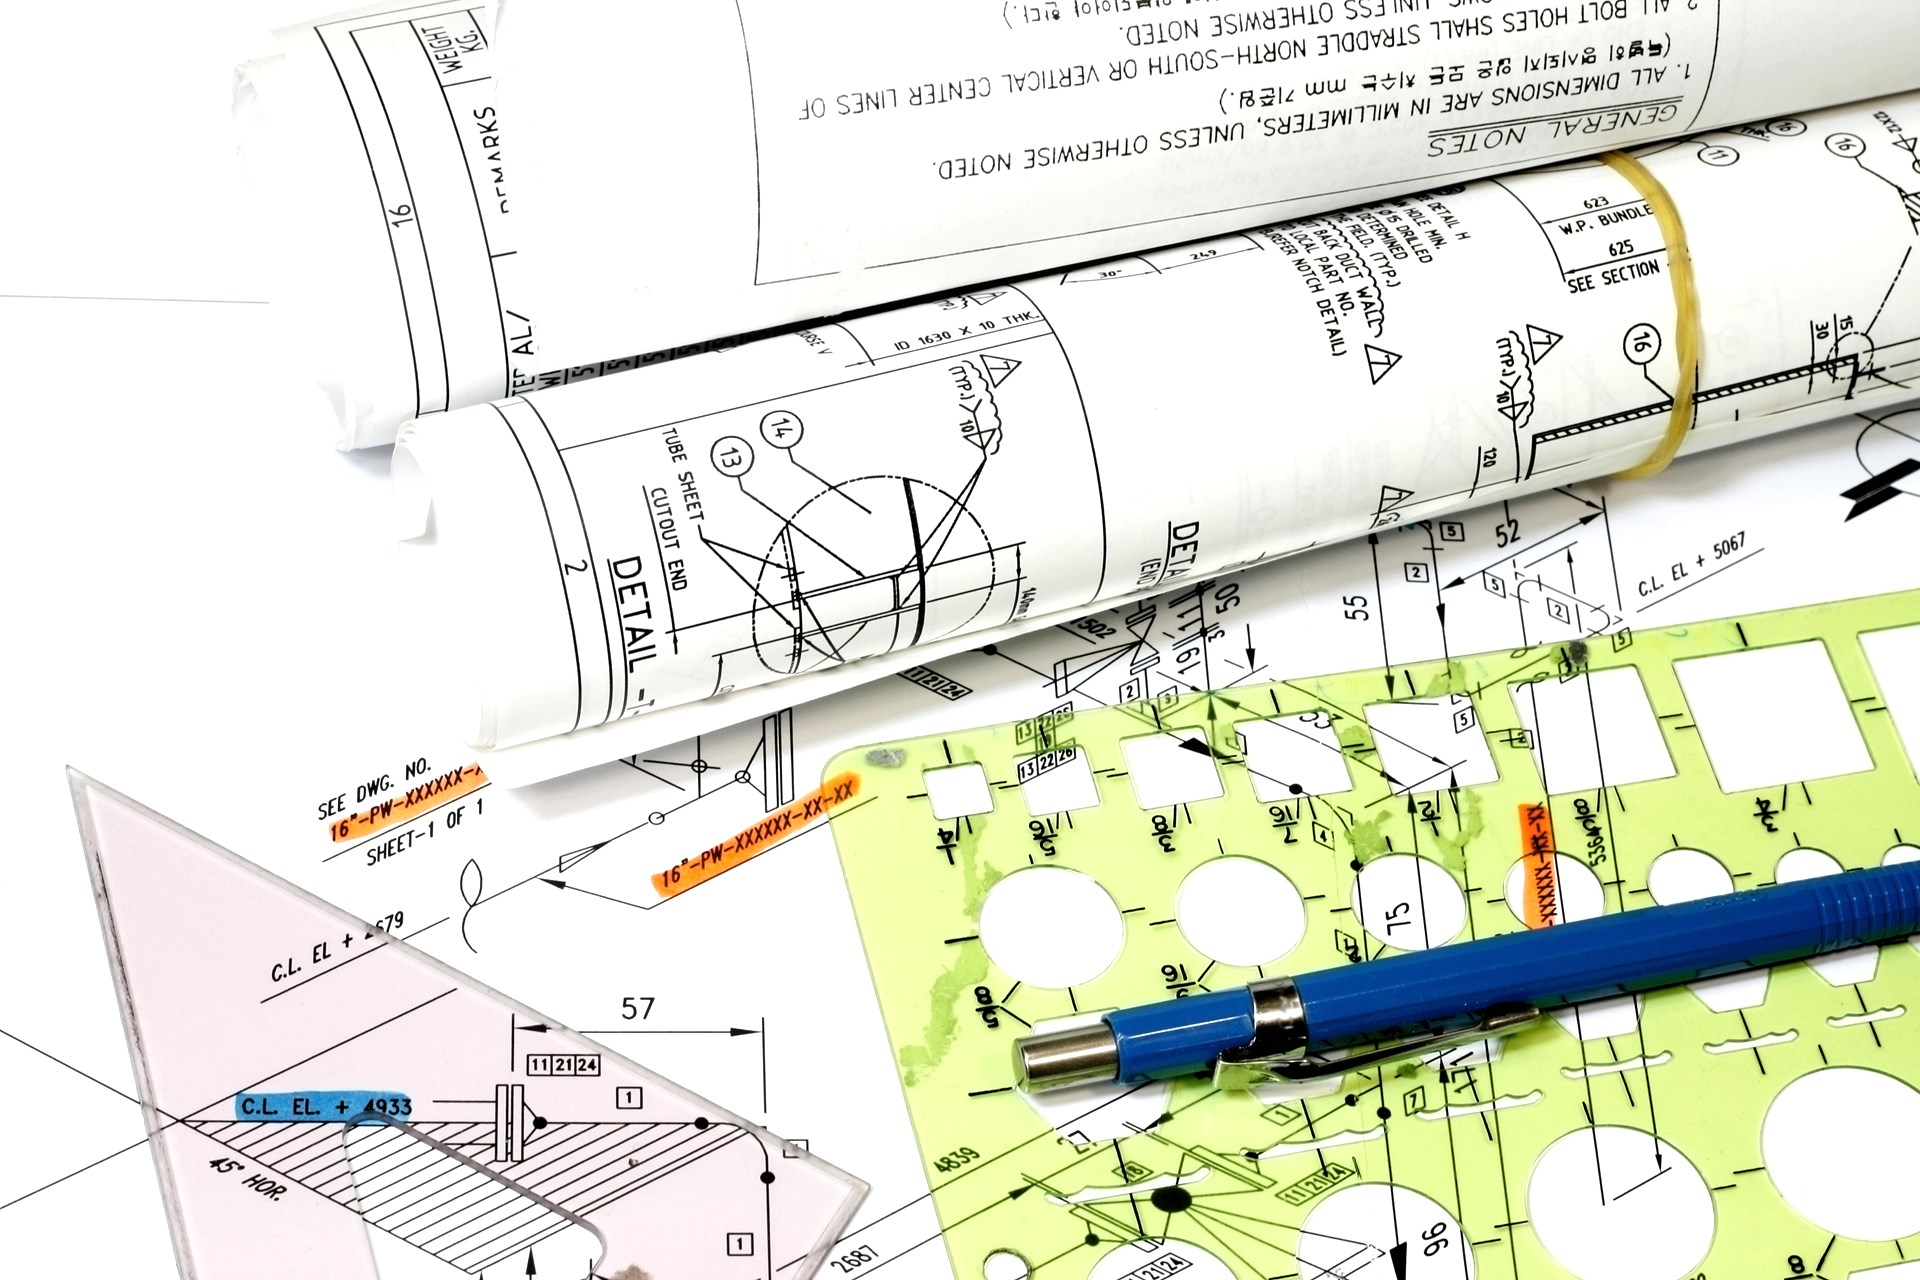 electrical p id drawings the wiring diagram electrical p id drawings vidim wiring diagram electrical drawing